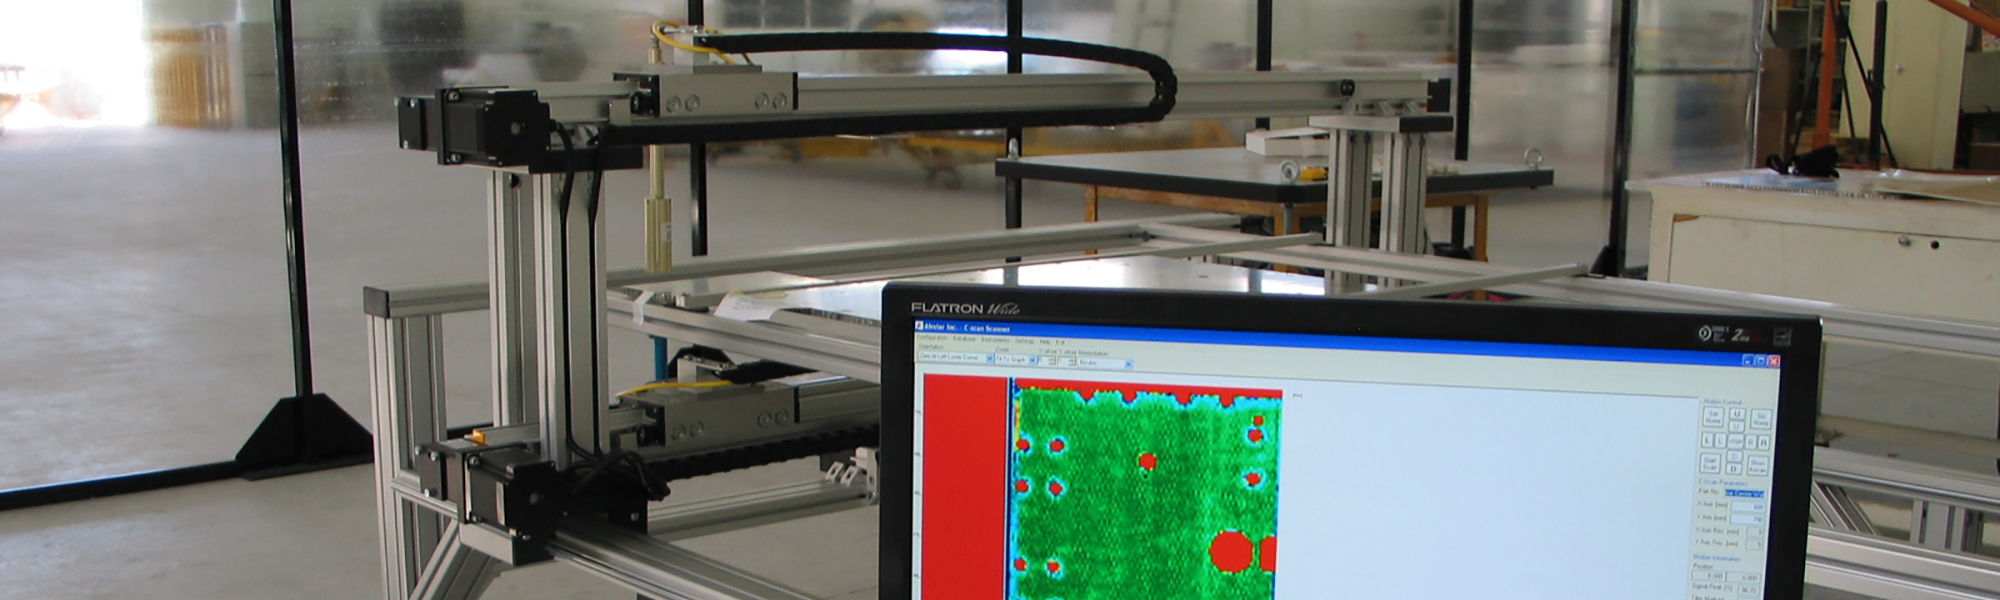 C-SCAN systems for composite materials